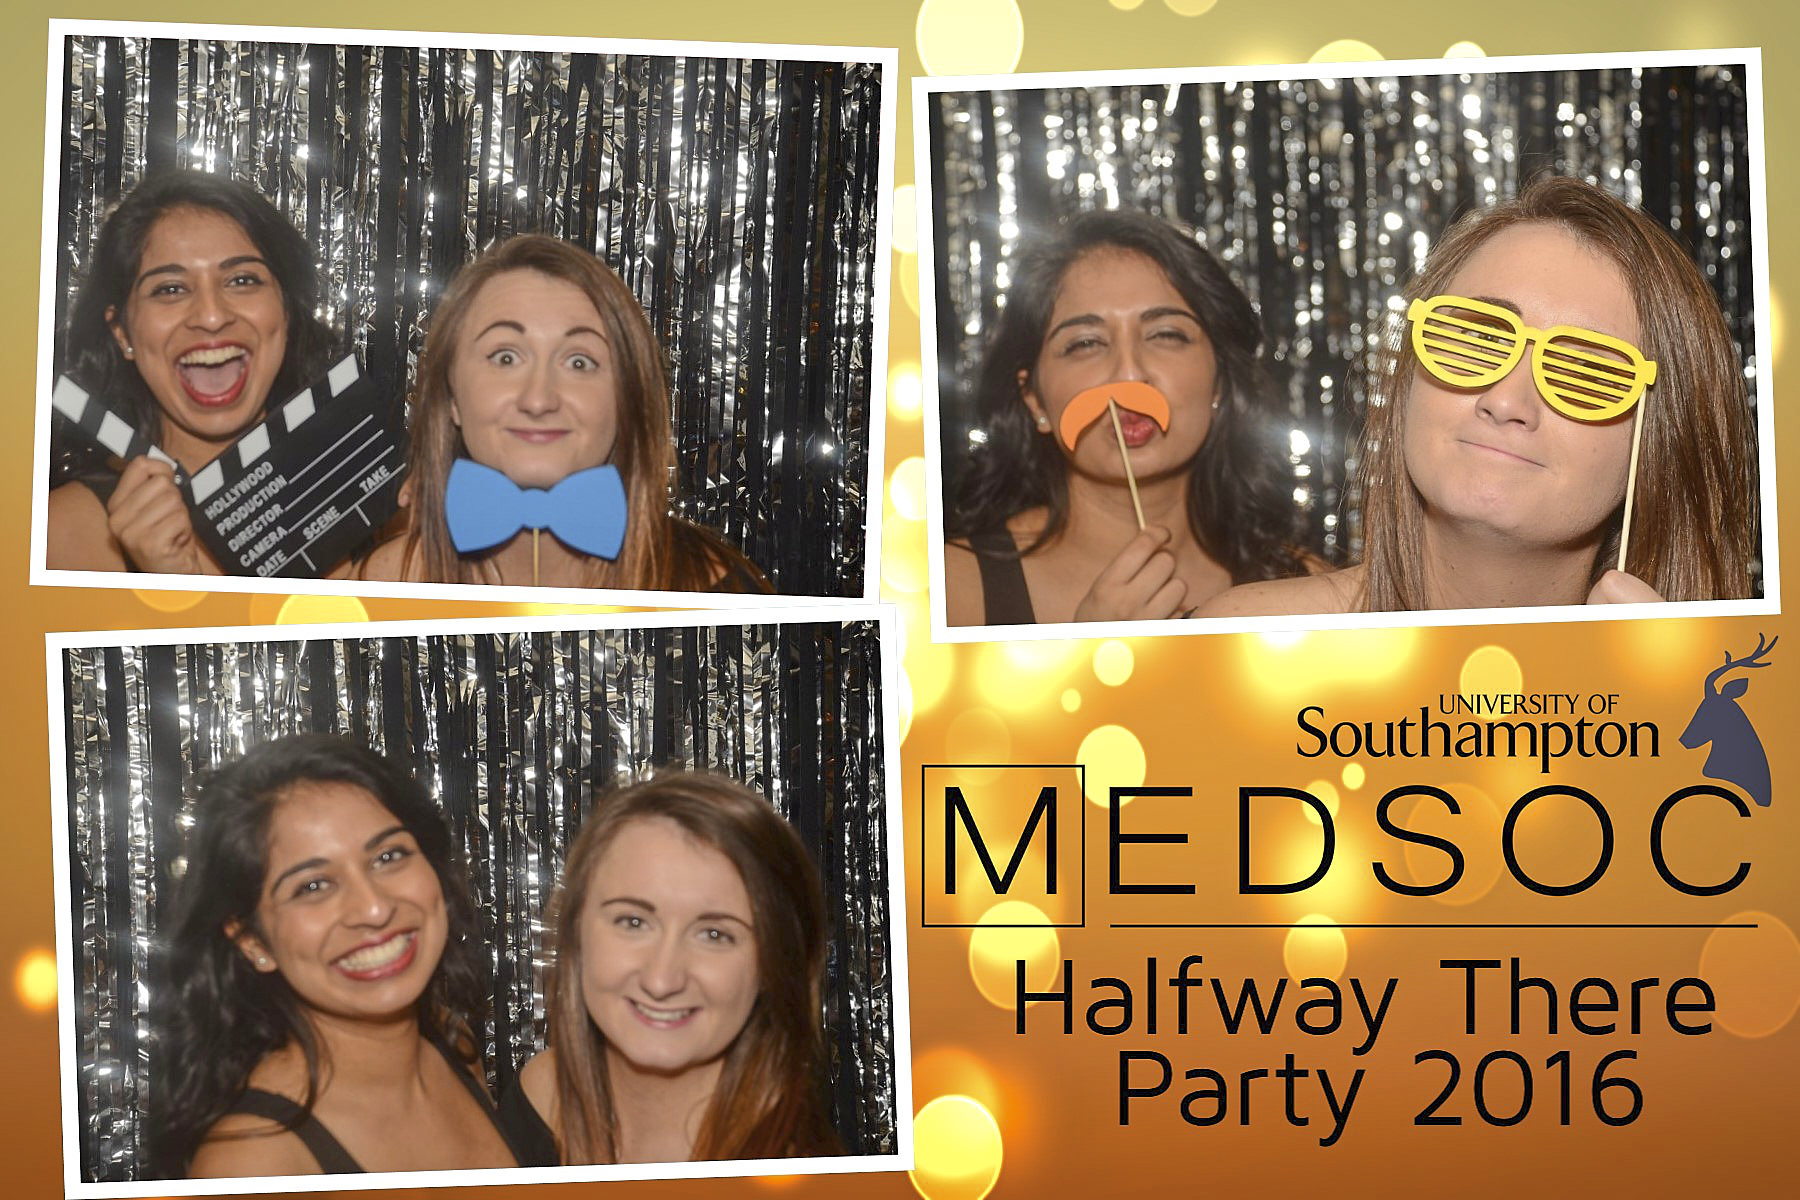 MedSoc Halfway There Party 2016 DS005810.jpg